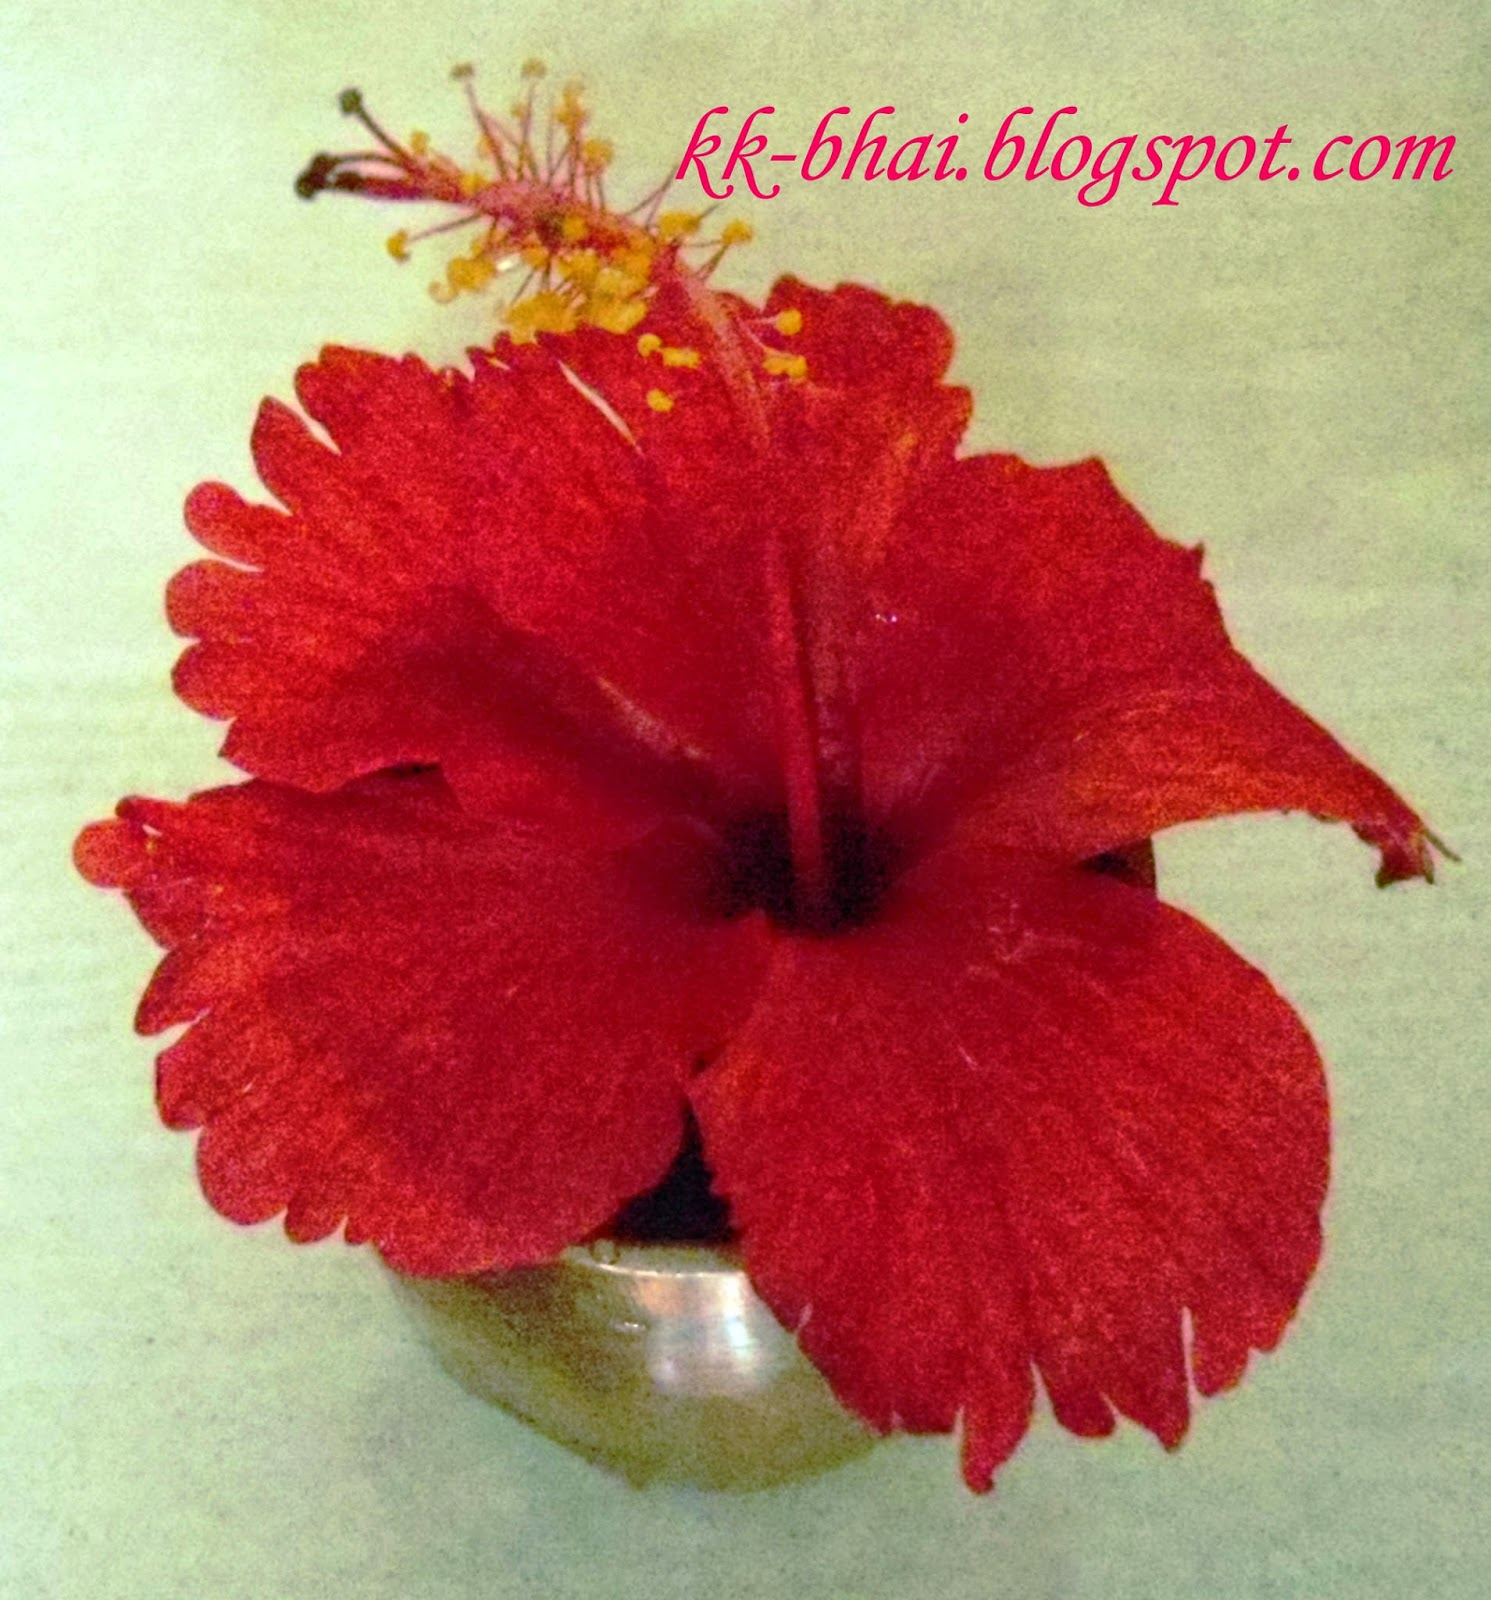 Puja flowers and other things used in puja hindu worship ekahari arhul hibiscus with a single layer of petals the favorite flower of goddess kali izmirmasajfo